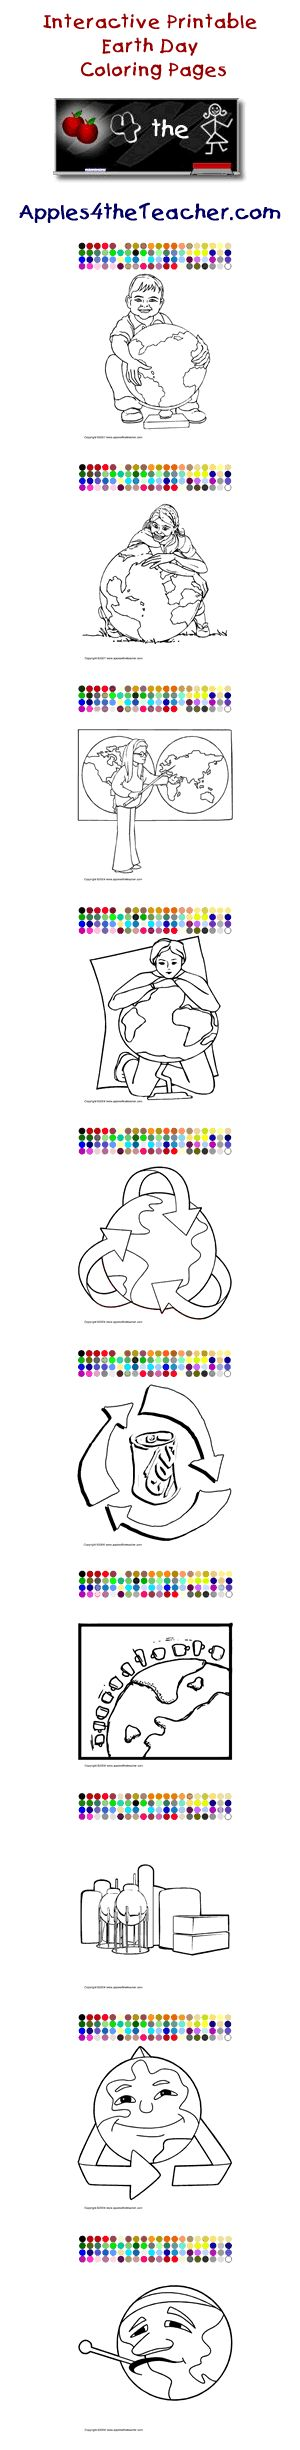 Printable interactive Earth Day coloring pages, Earth Day coloring pages for kids  http://www.apples4theteacher.com/coloring-pages/earth-day/